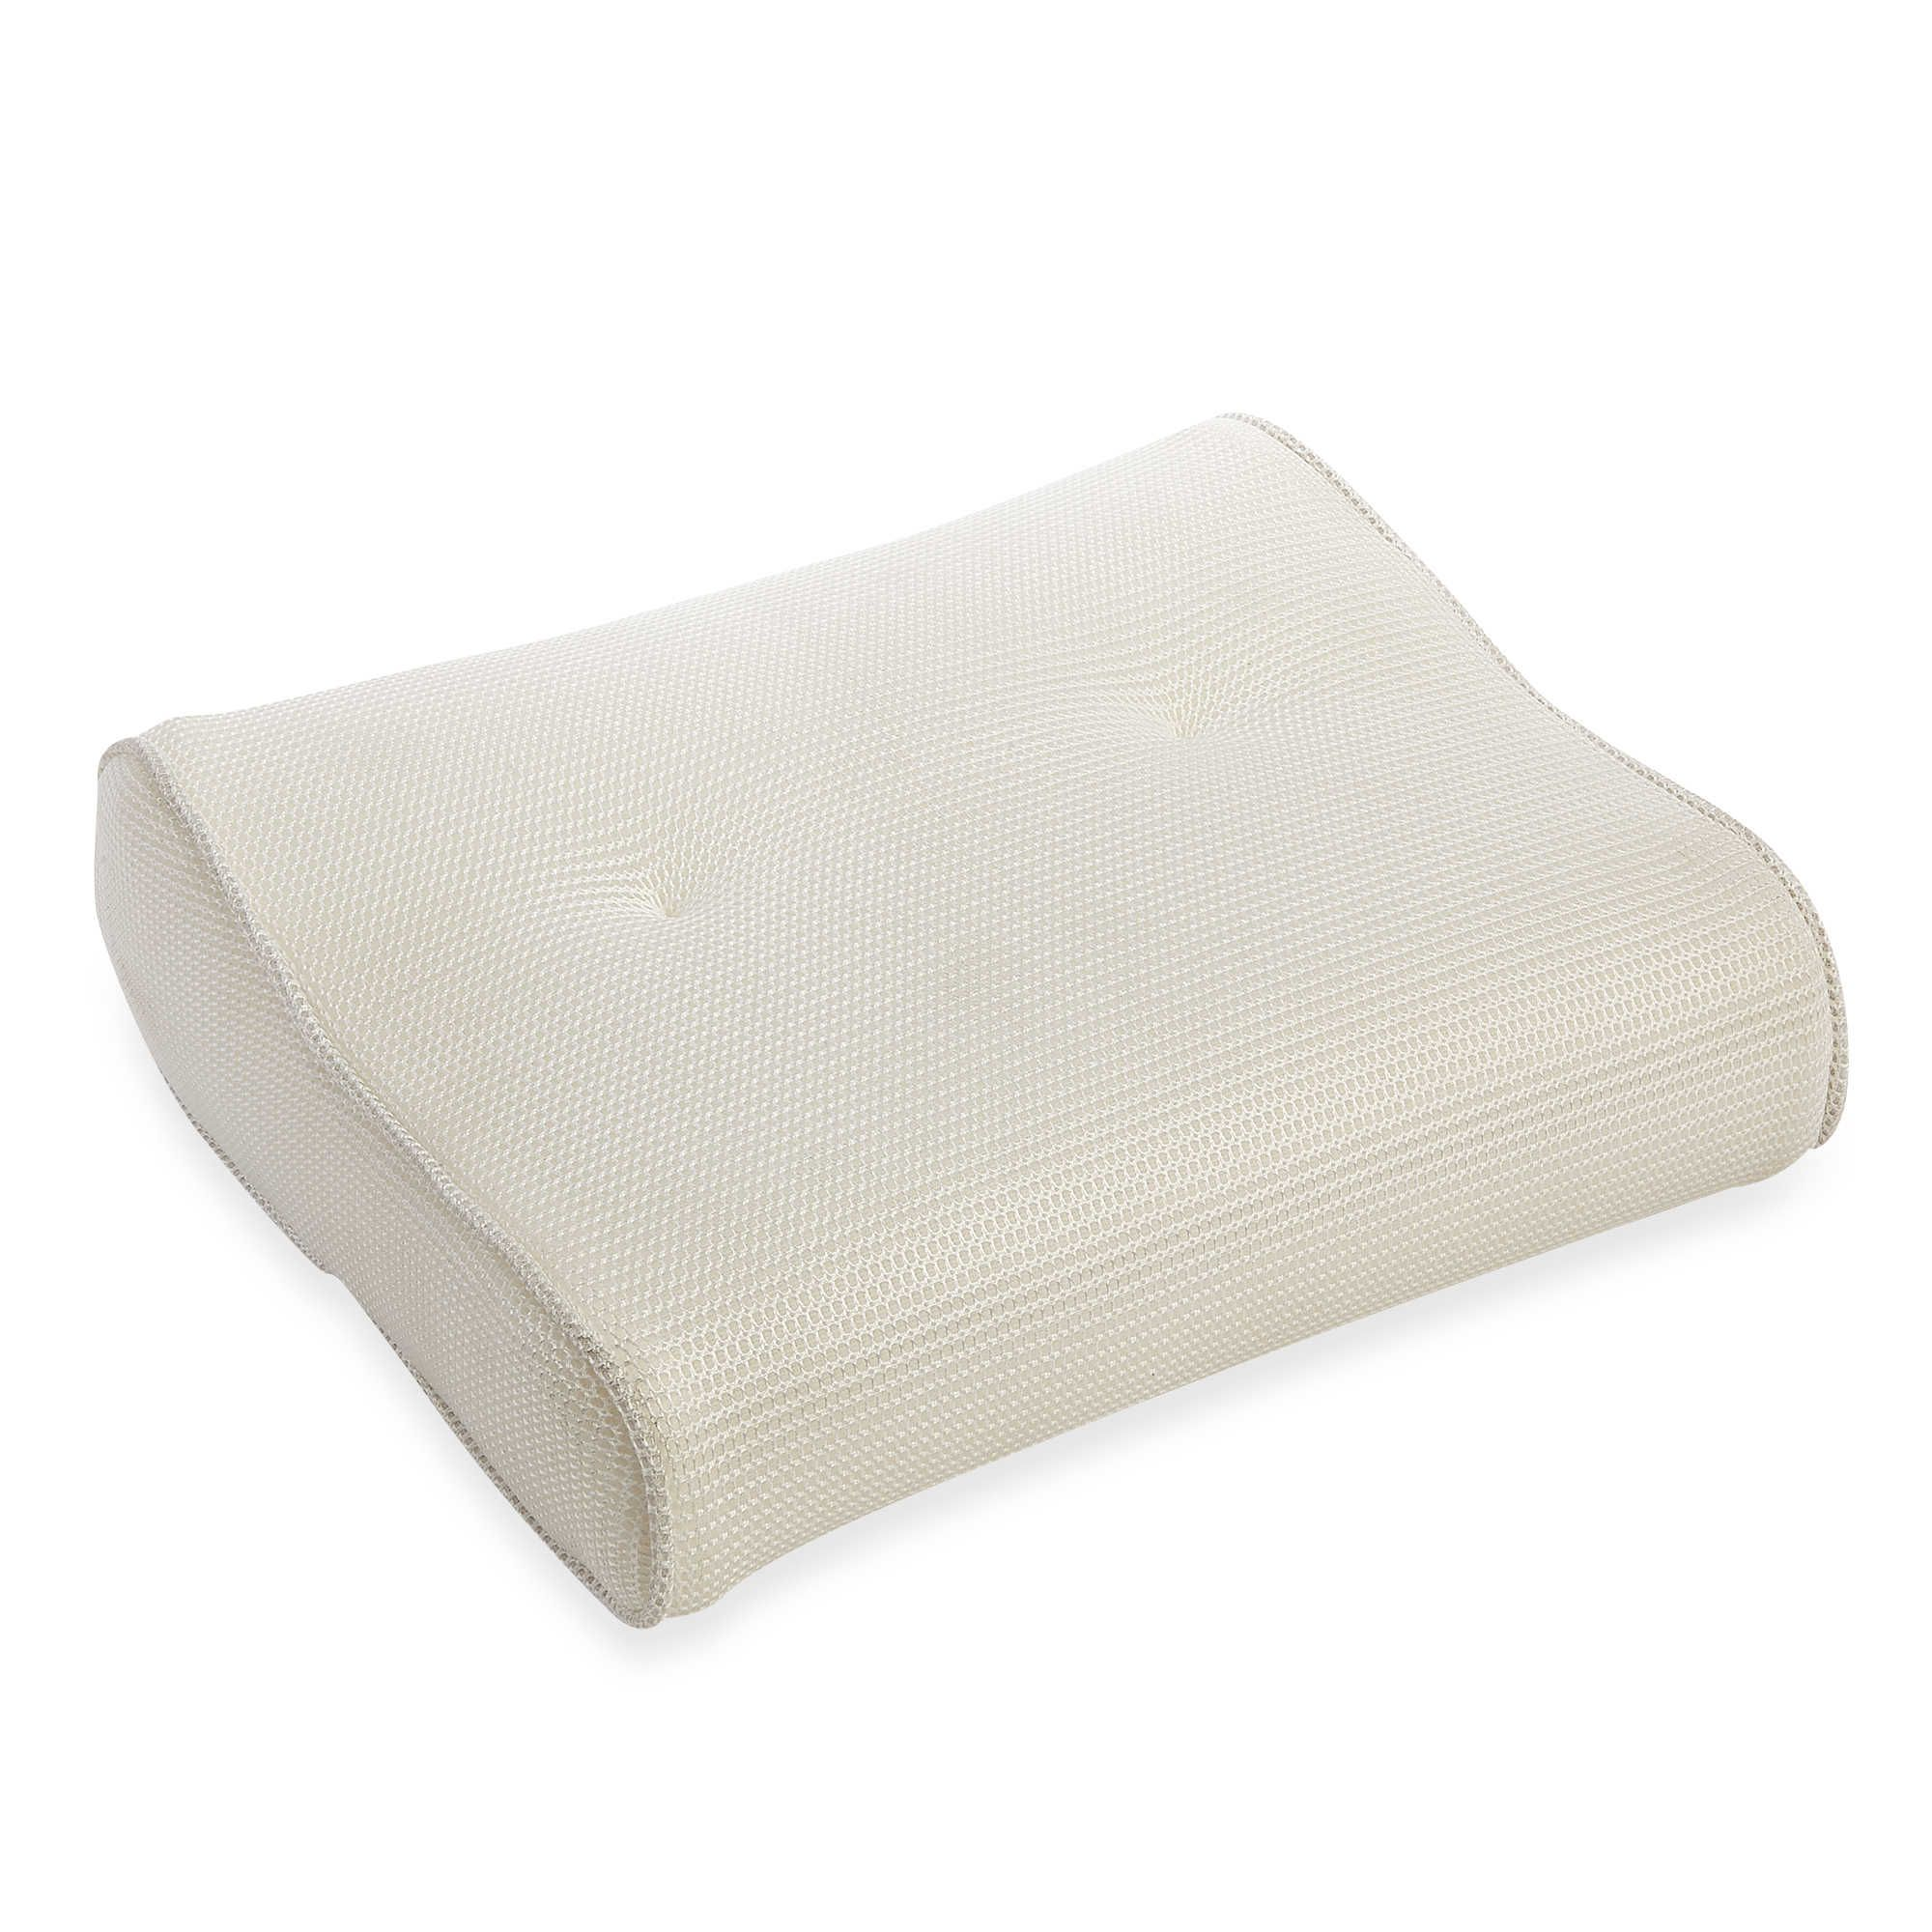 Airia Luxury Quick Dry Curved Spa Bath Pillow | bathroom ideas ...